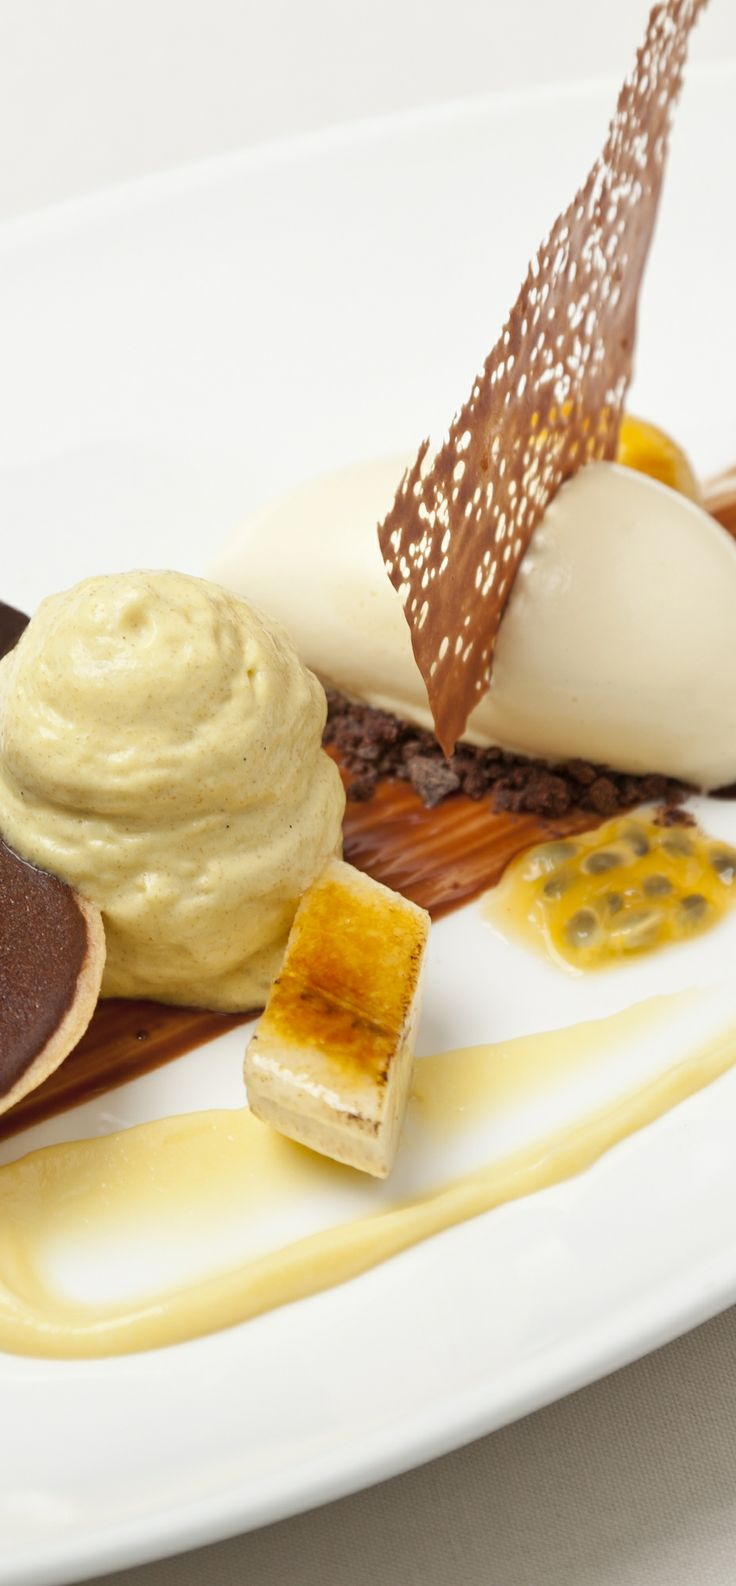 Hot chocolate tart with banana and passion fruit ice cream - Simon Haigh